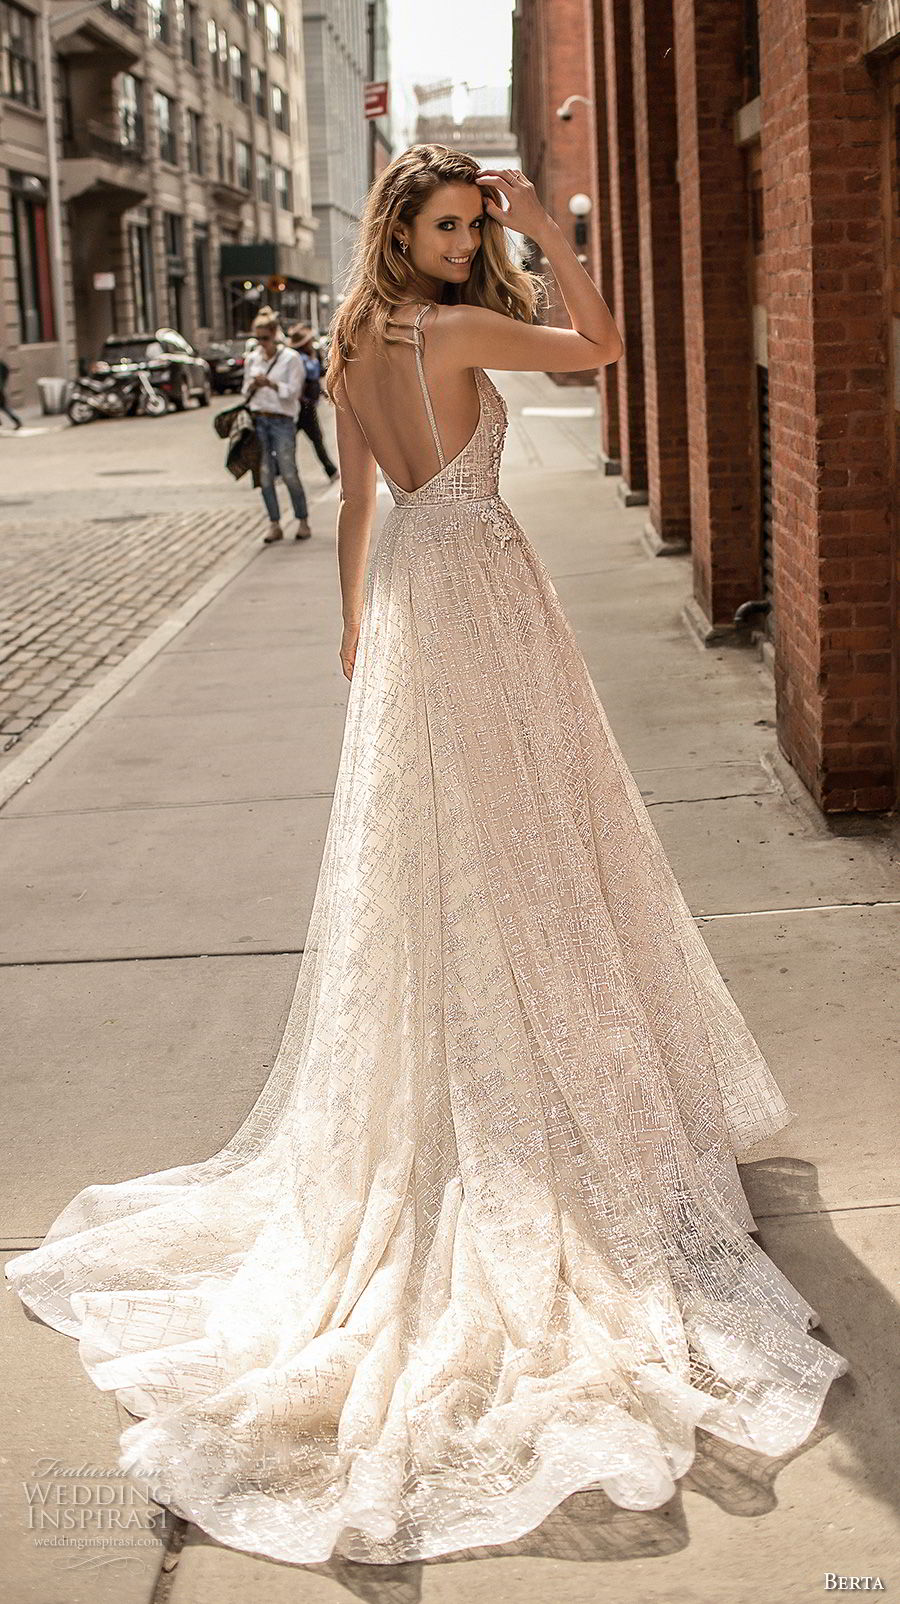 berta spring 2018 bridal spaghetti strap deep v neck full embellishment sexy romantic a line wedding dress open back chapel train (2) bv